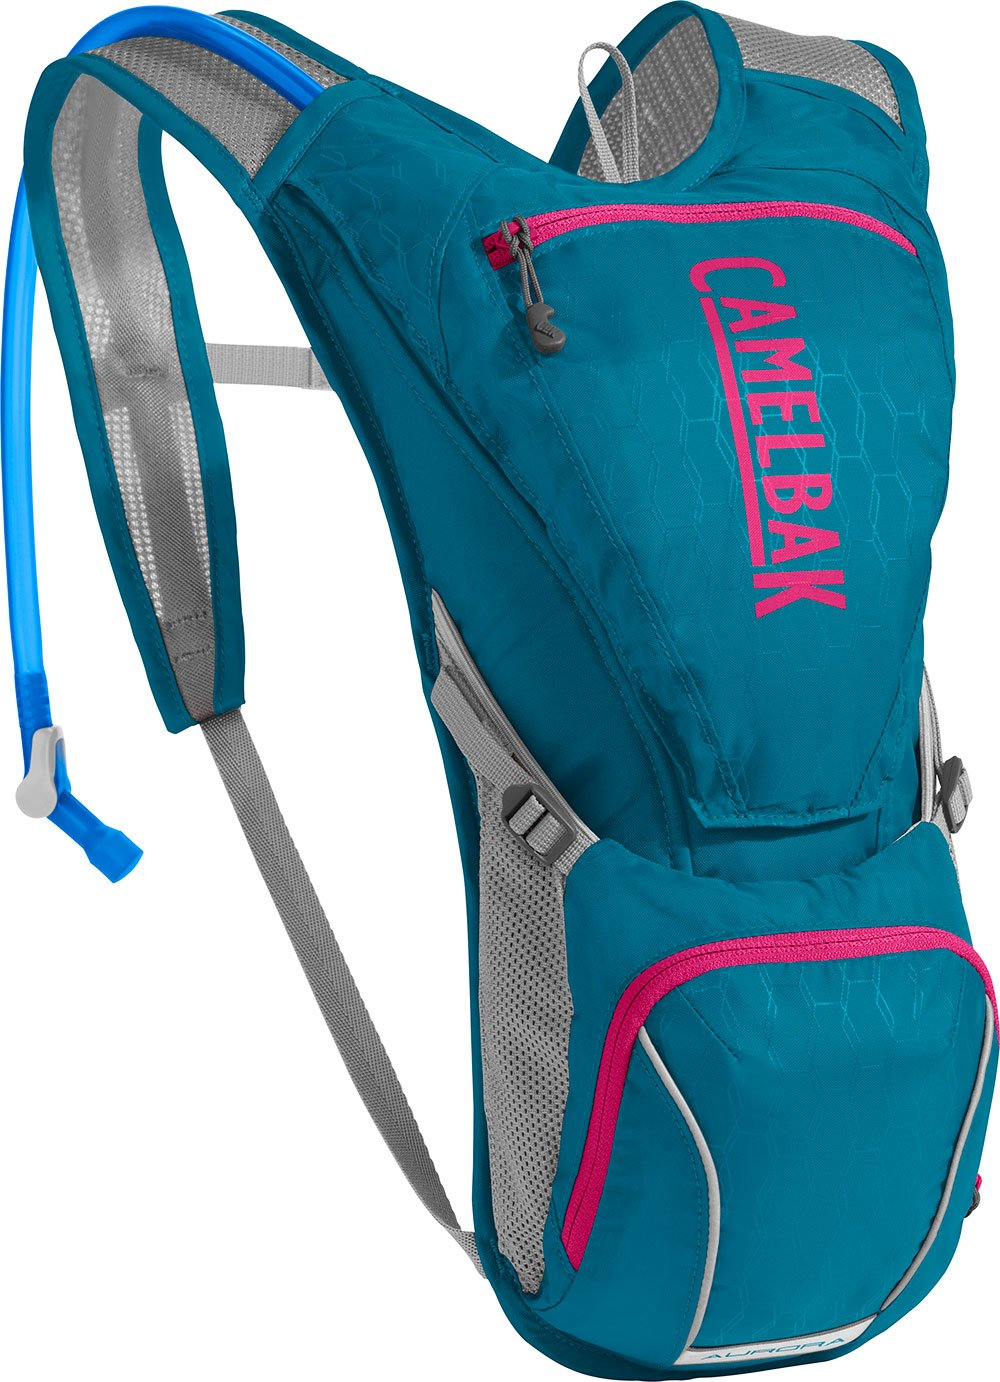 CamelBak Aurora Hydration Pack, 85oz